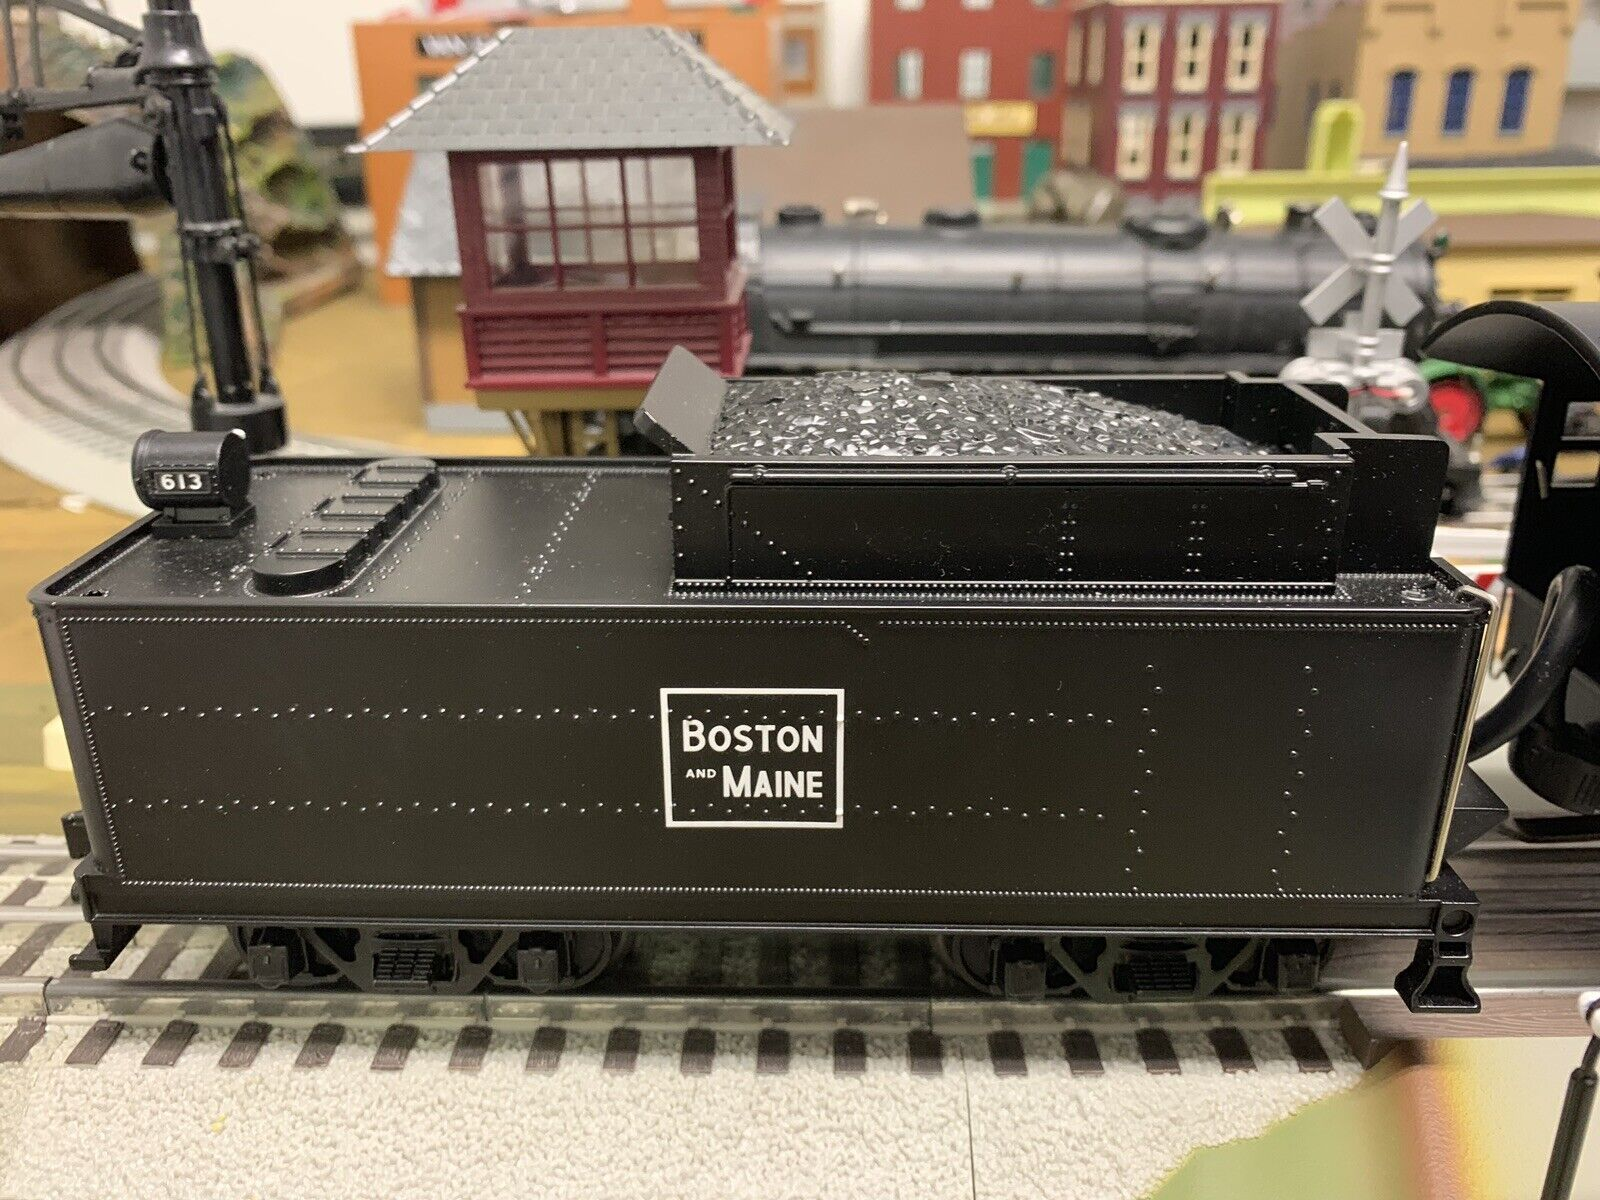 MTH Rail King Boston And Maine 0-8-0 Steam Engine W Proto 2 Lionel Atlas O Scale